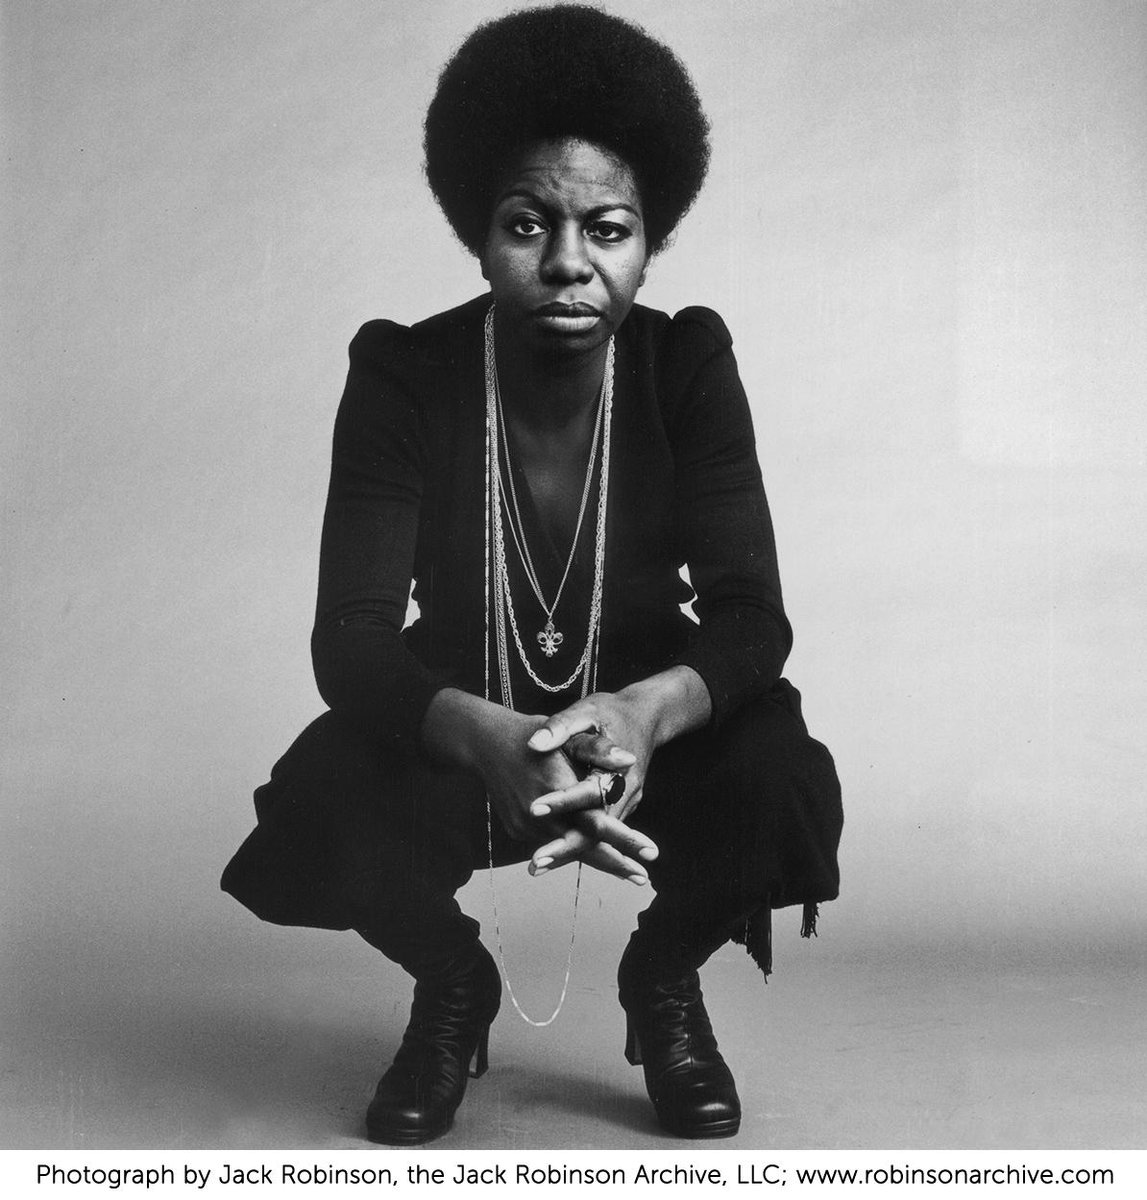 At 12, black singer/pianist Nina Simone refused to play at her recital until her parents were moved back to the front http://t.co/PqA0HzQTCQ